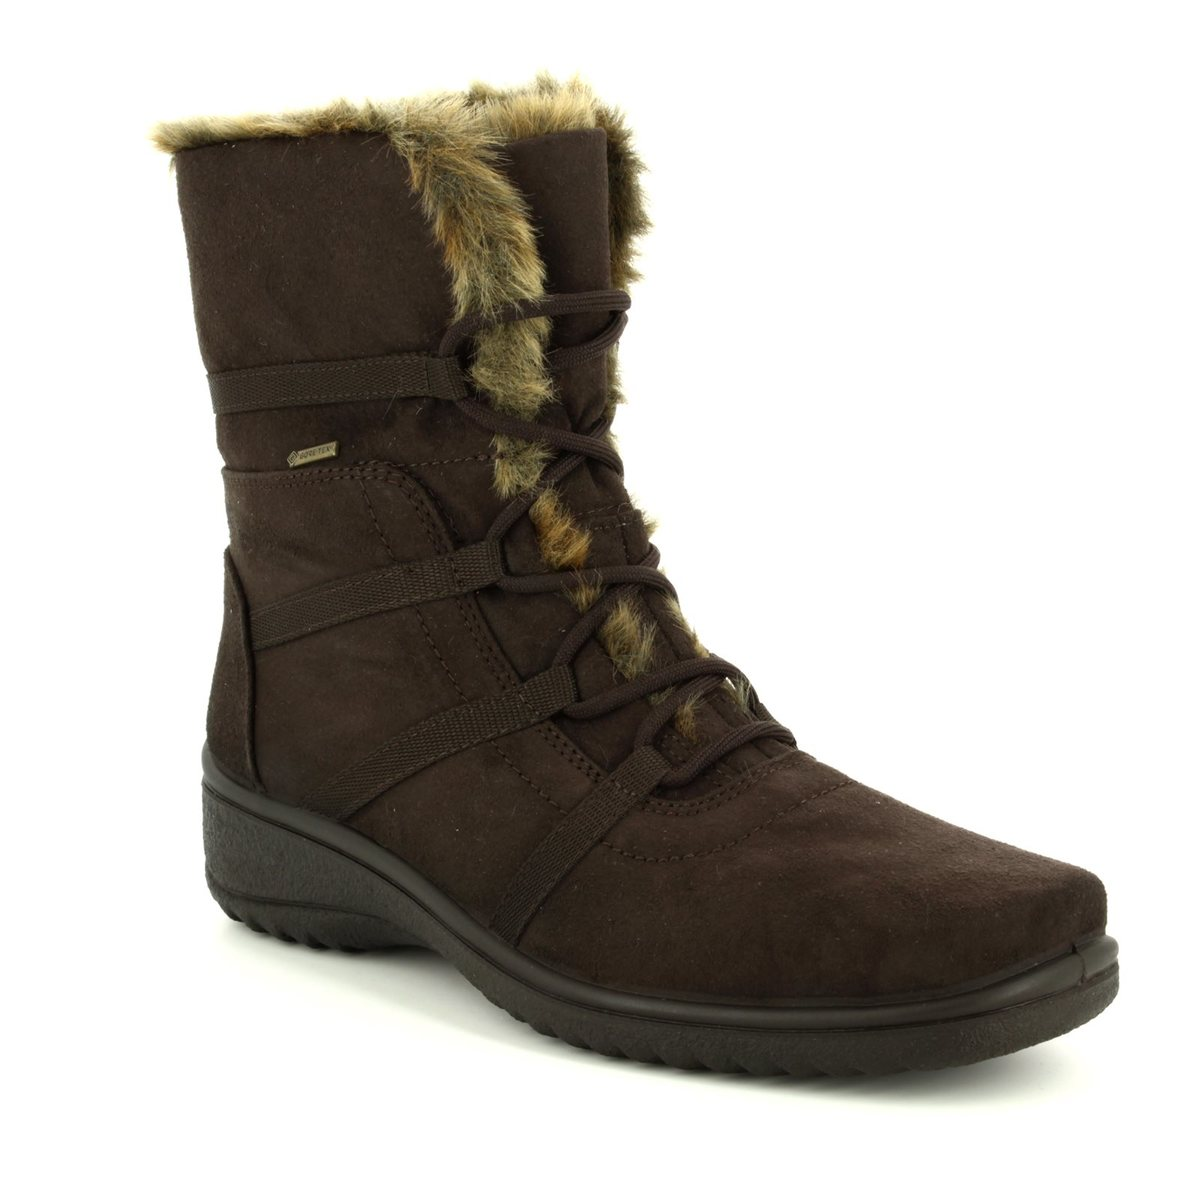 finest selection 0e951 54c40 48523/08 Munich Boot Gore-tex at Begg Shoes & Bags